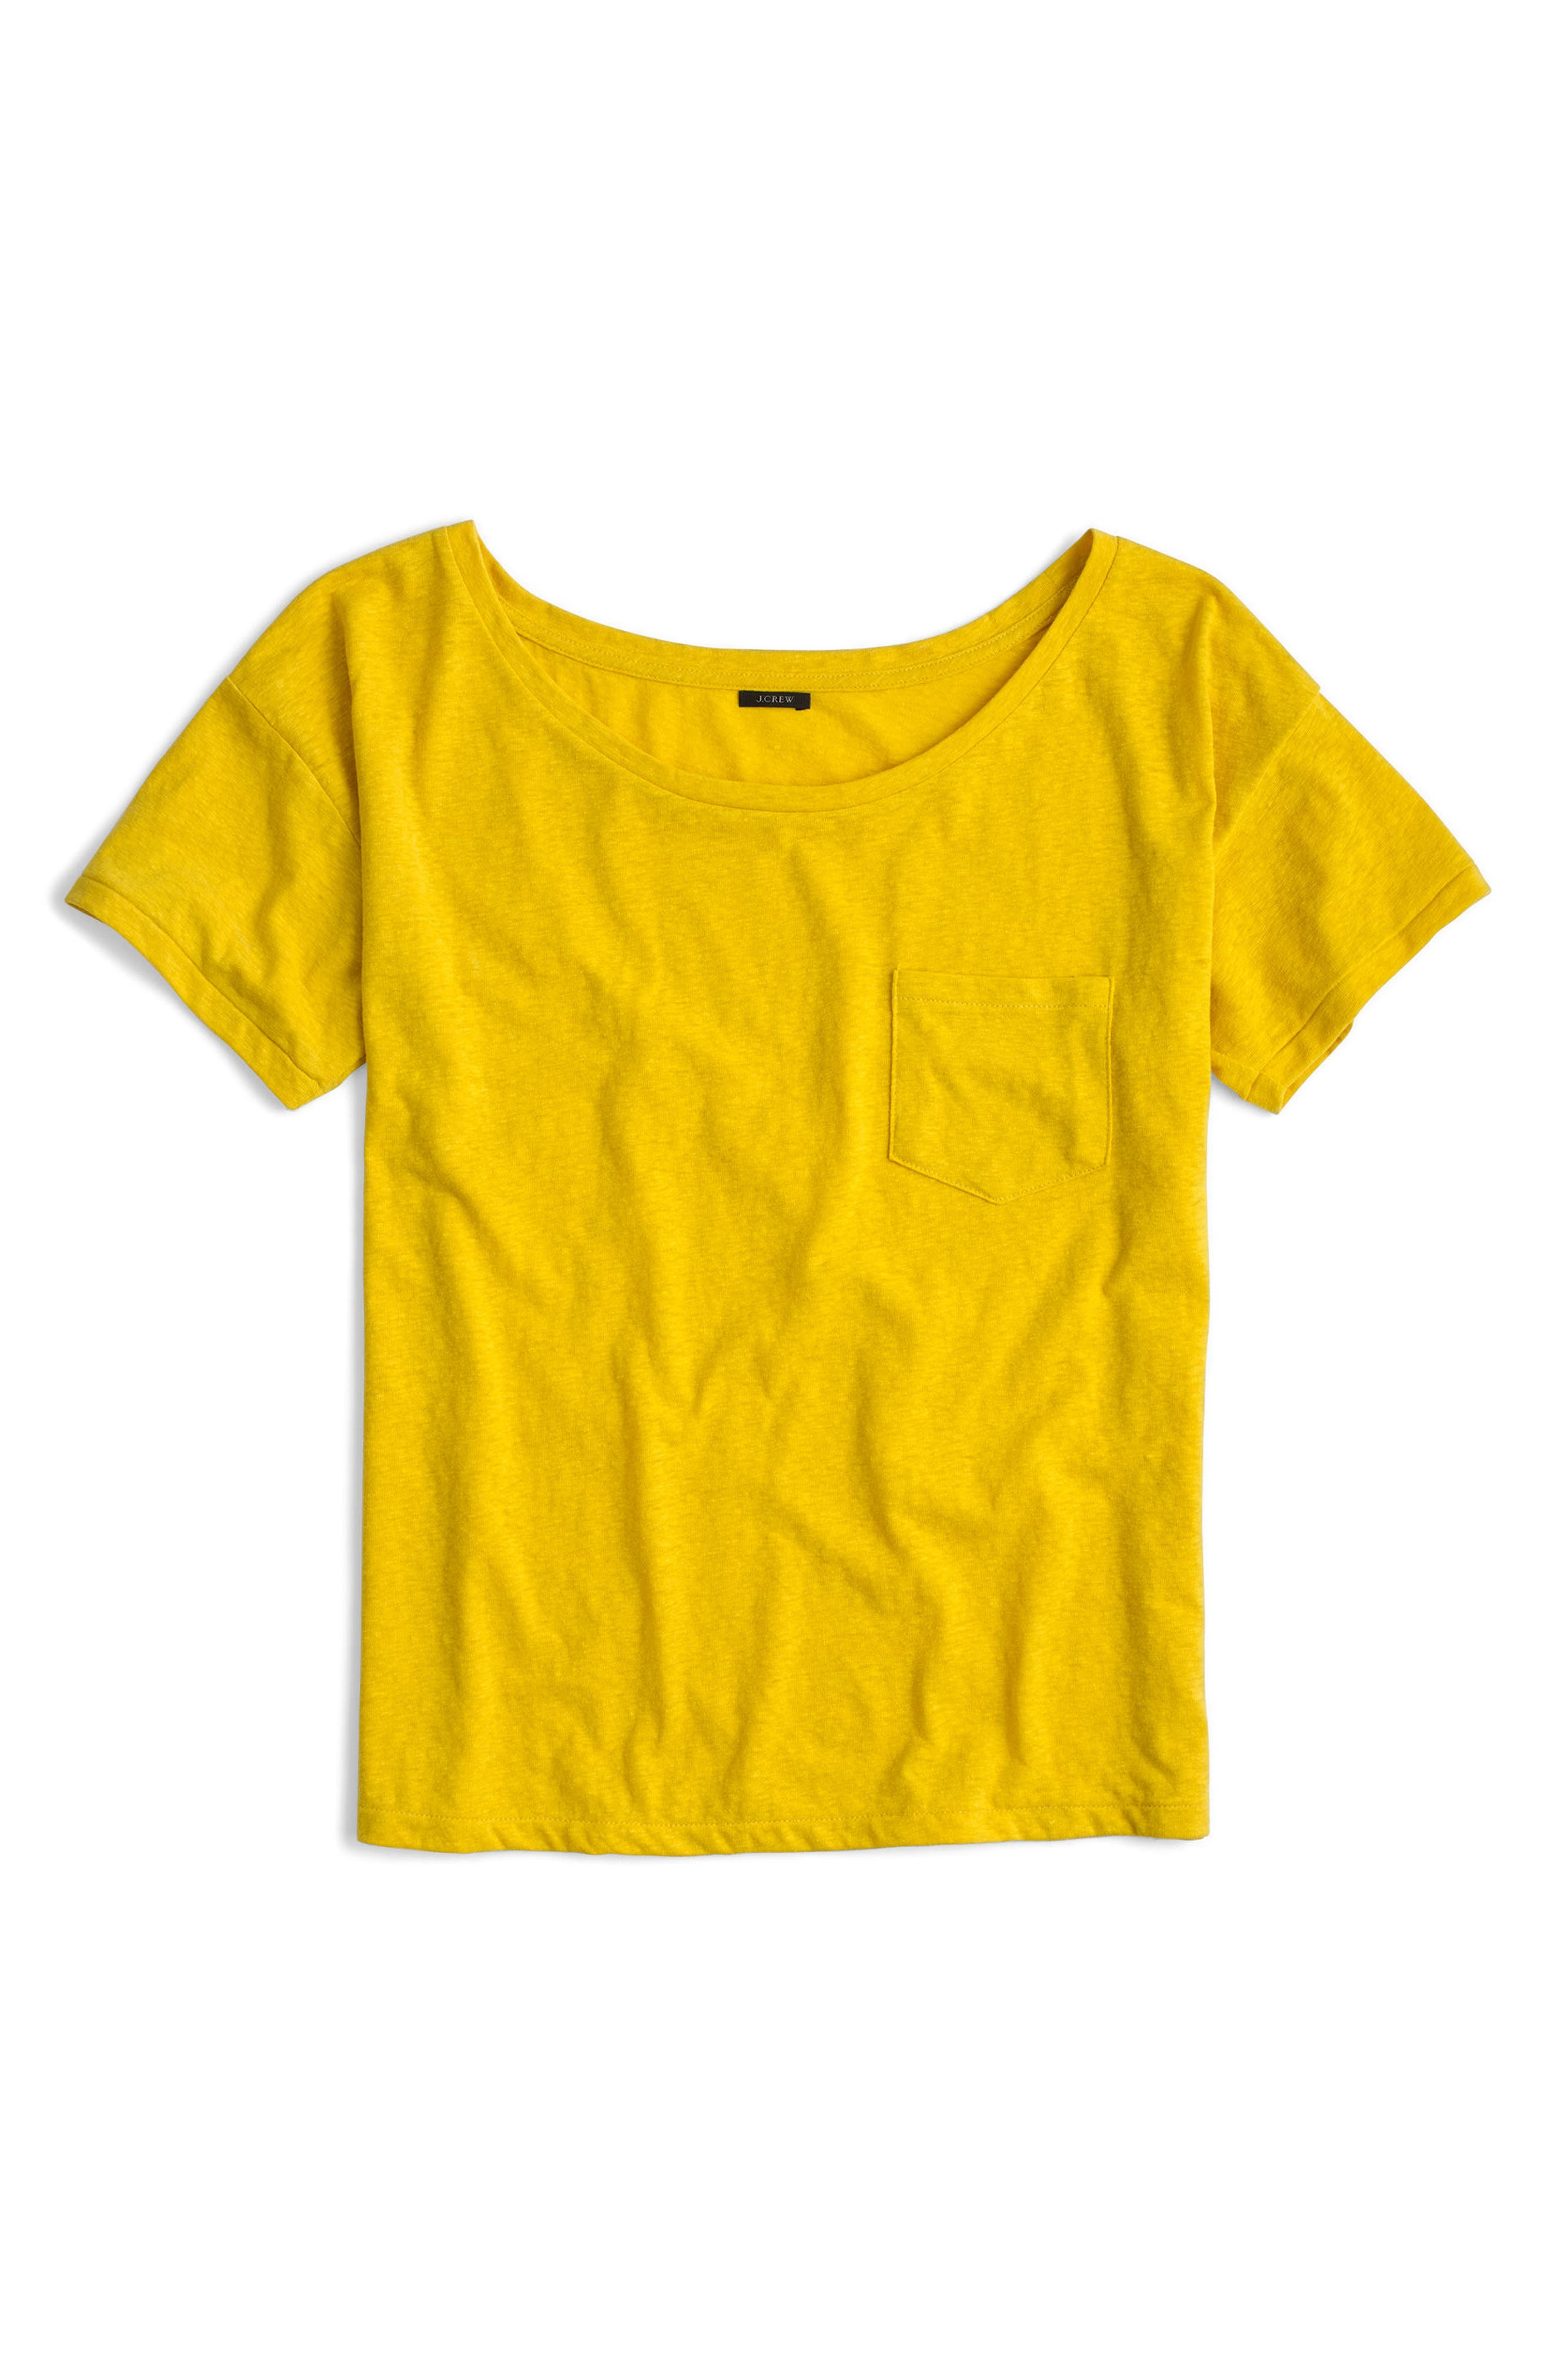 J.Crew Relaxed Boat Neck Tee